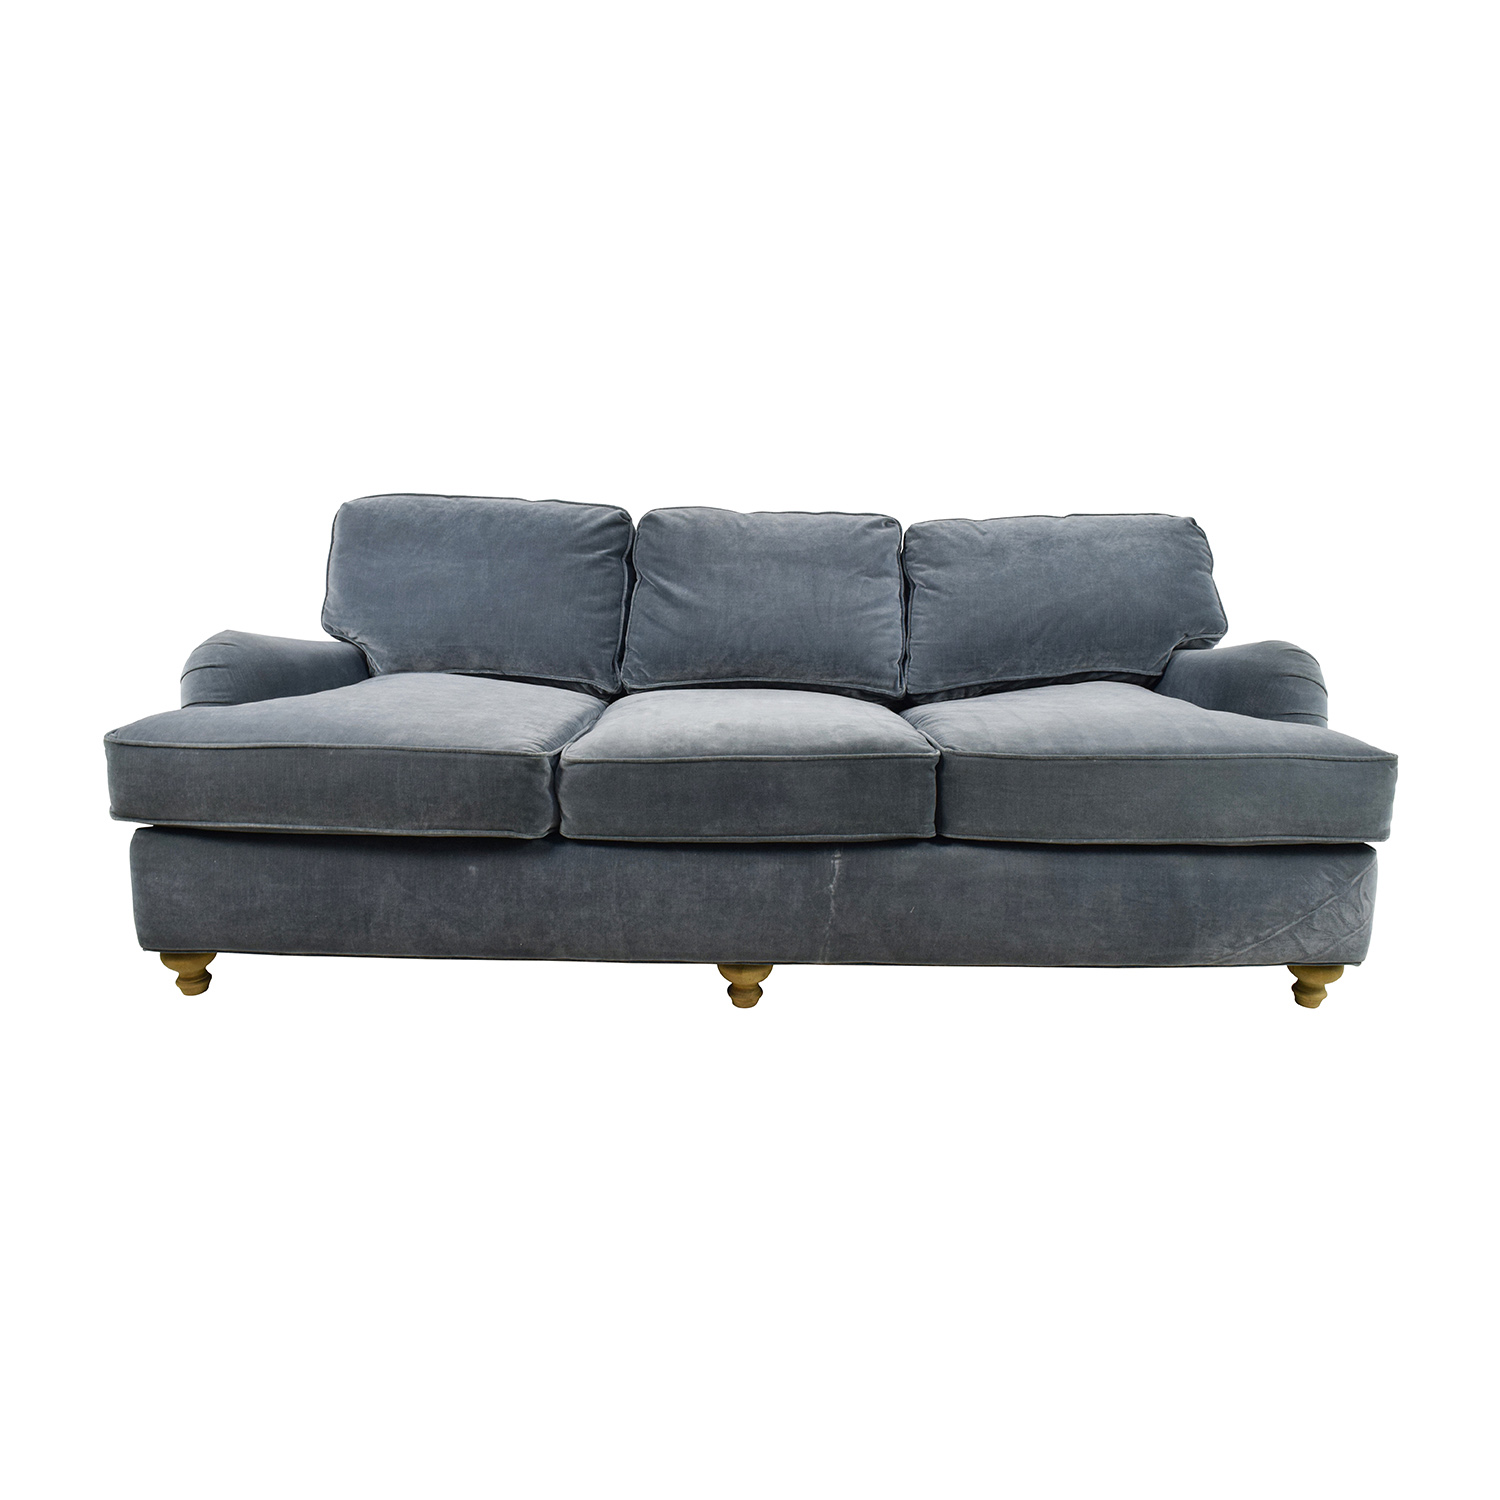 buy Restoration Hardware English Roll Arm 84 Sleeper Sofa Restoration Hardware Classic Sofas